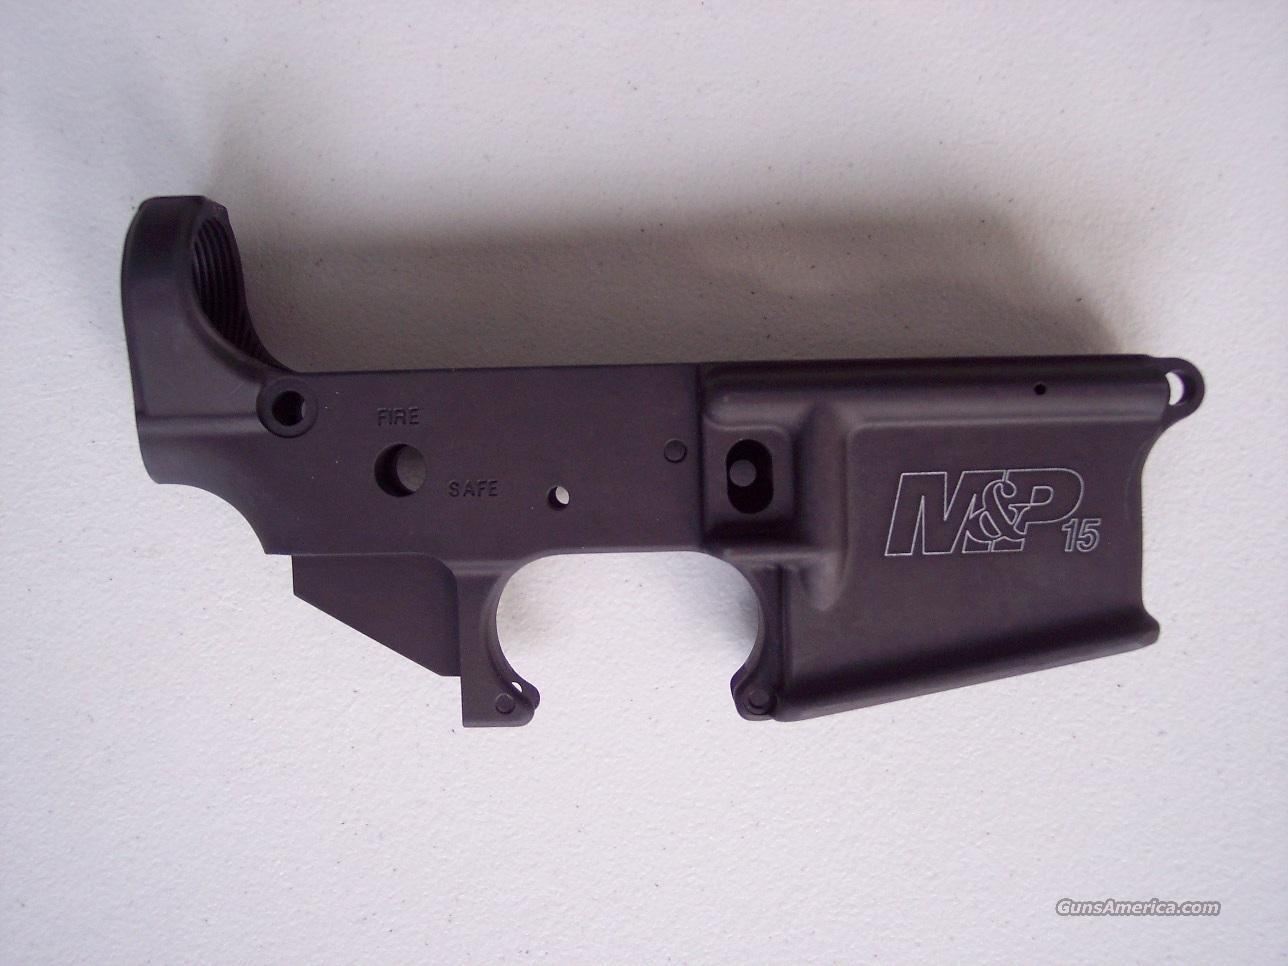 Smith & Wesson M&P AR-15 Stipped Lower NEW  Guns > Rifles > Smith & Wesson Rifles > M&P